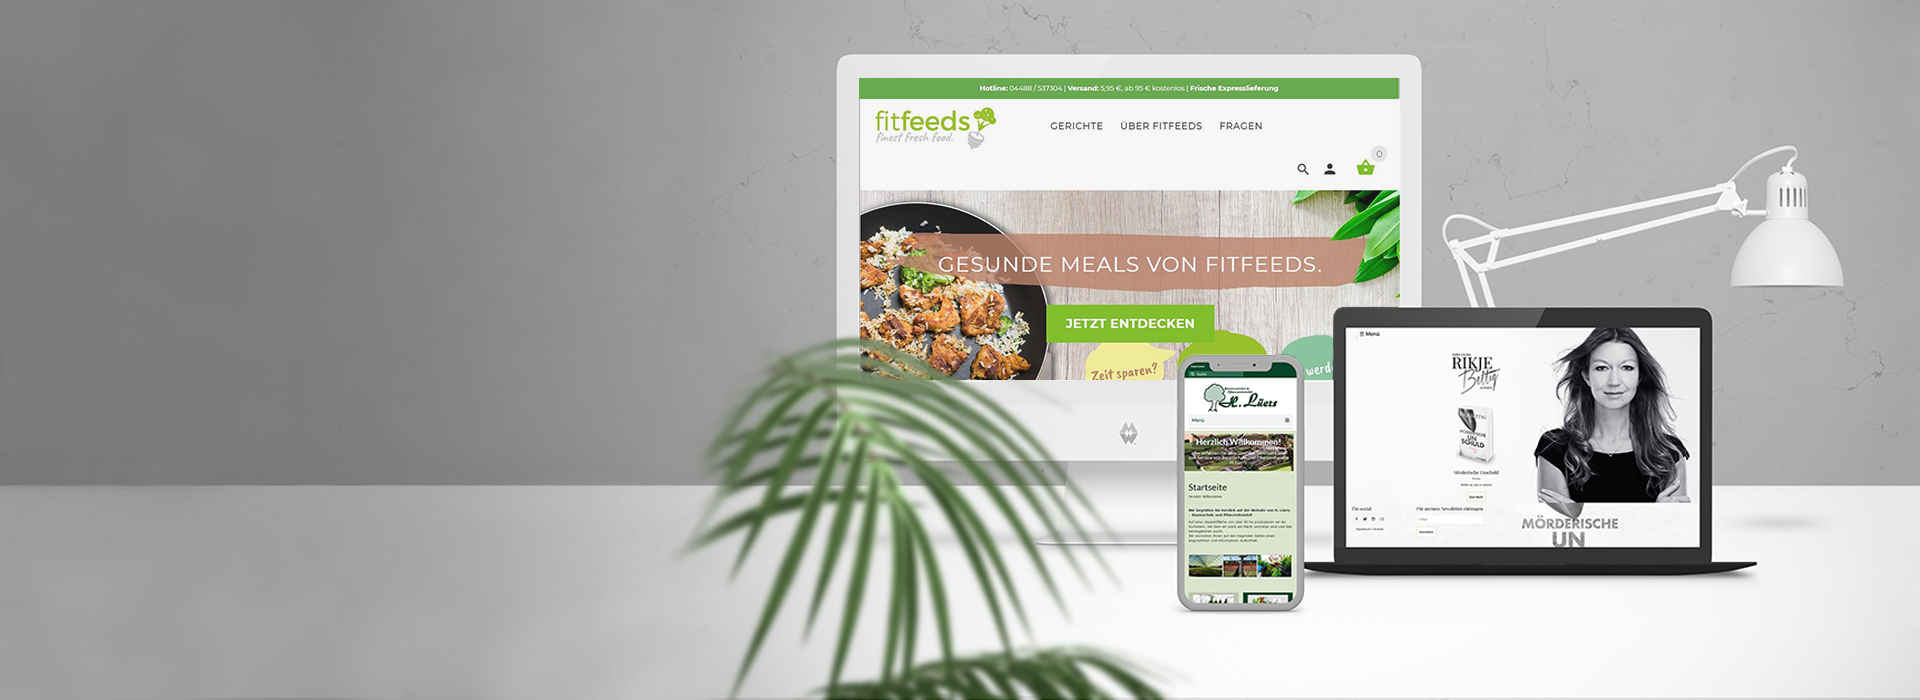 Webdesign und Screendesign